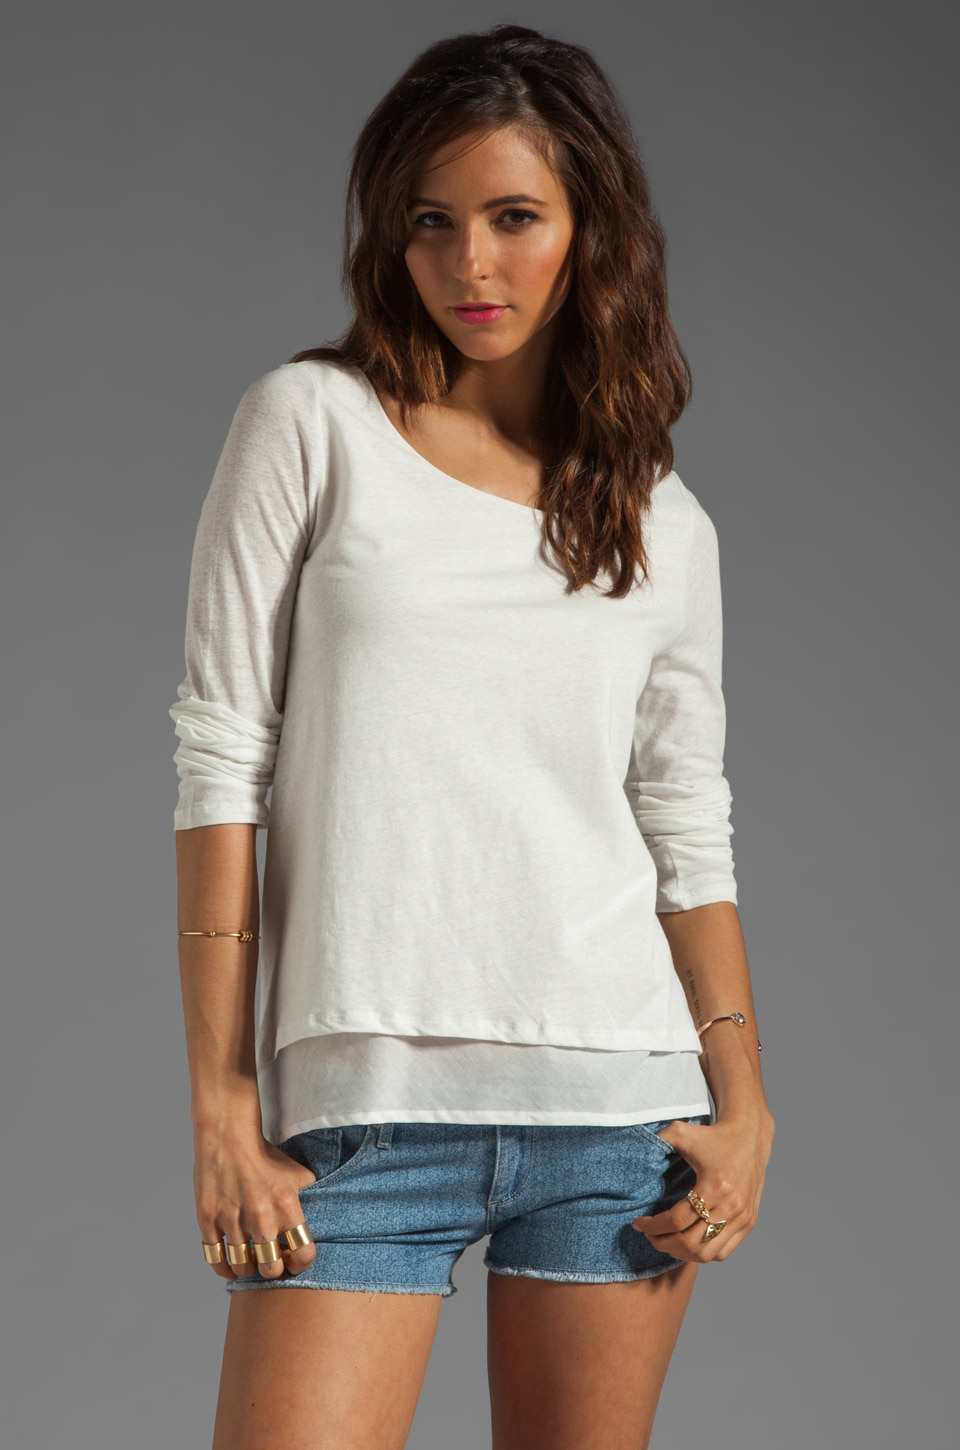 Soft Joie Ambry Layered Linen Top in Porcelain